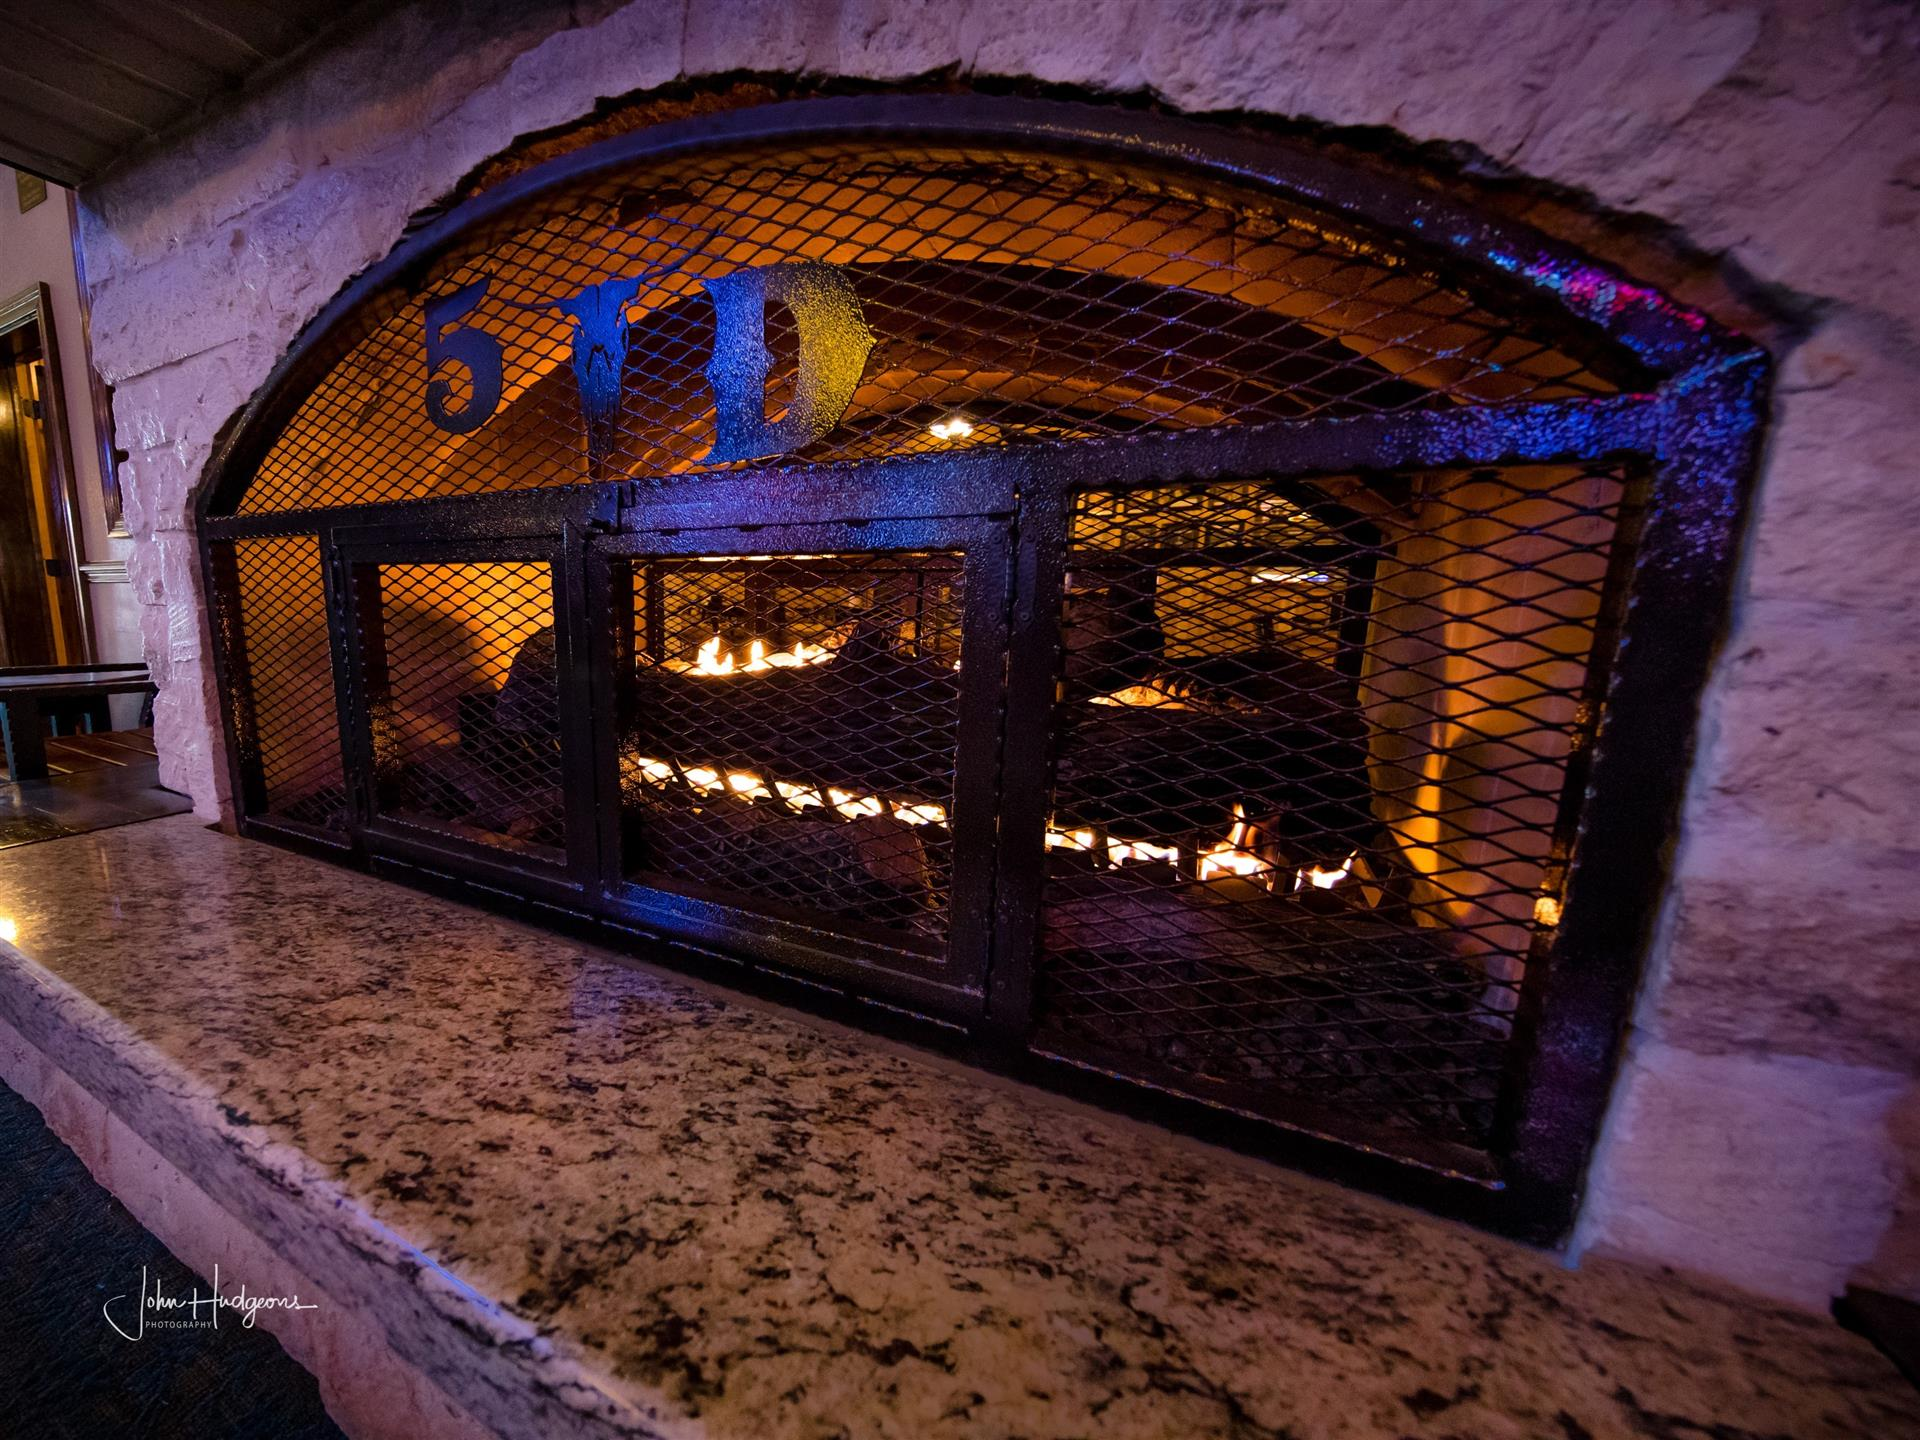 Fireplace inside restaurant with 5D logo on it